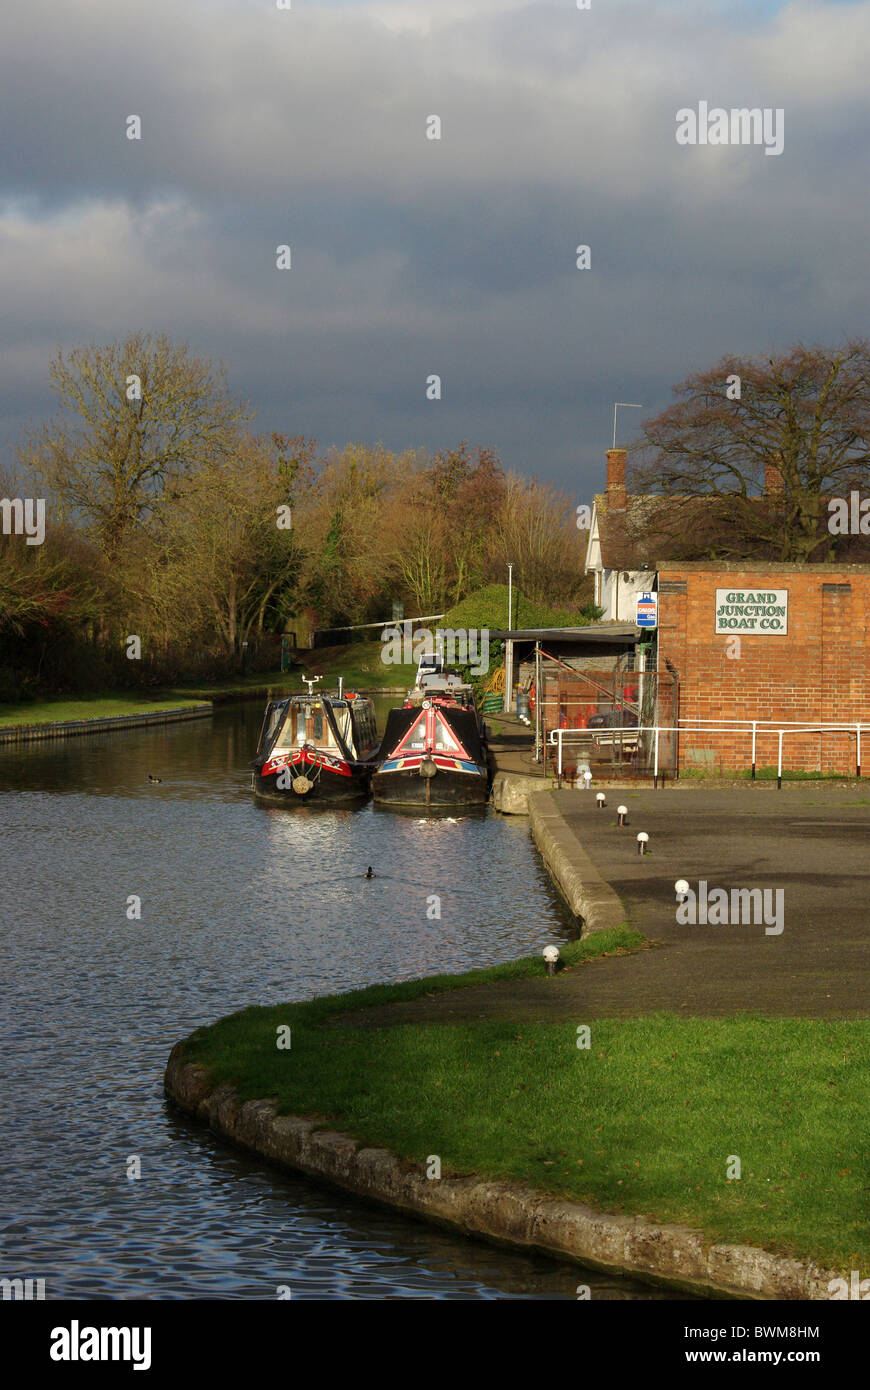 Two traditional narrowboats moored on the Grand Union Canal at Blisworth Arm, Northamptonshire, UK - Stock Image